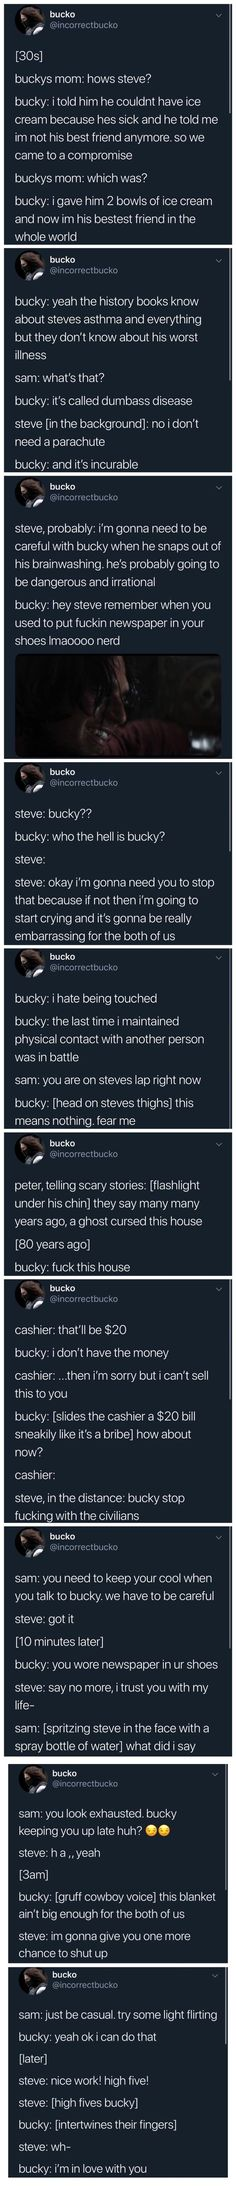 Here are 25 extremely funny and hilarious avengers memes. These are so humorous that only a hard core Marvel fan can understand them. Avengers Memes, Marvel Jokes, Marvel Funny, Marvel Dc Comics, Marvel Avengers, Disney Halloween, Bucky And Steve, Dc Memes, Stucky